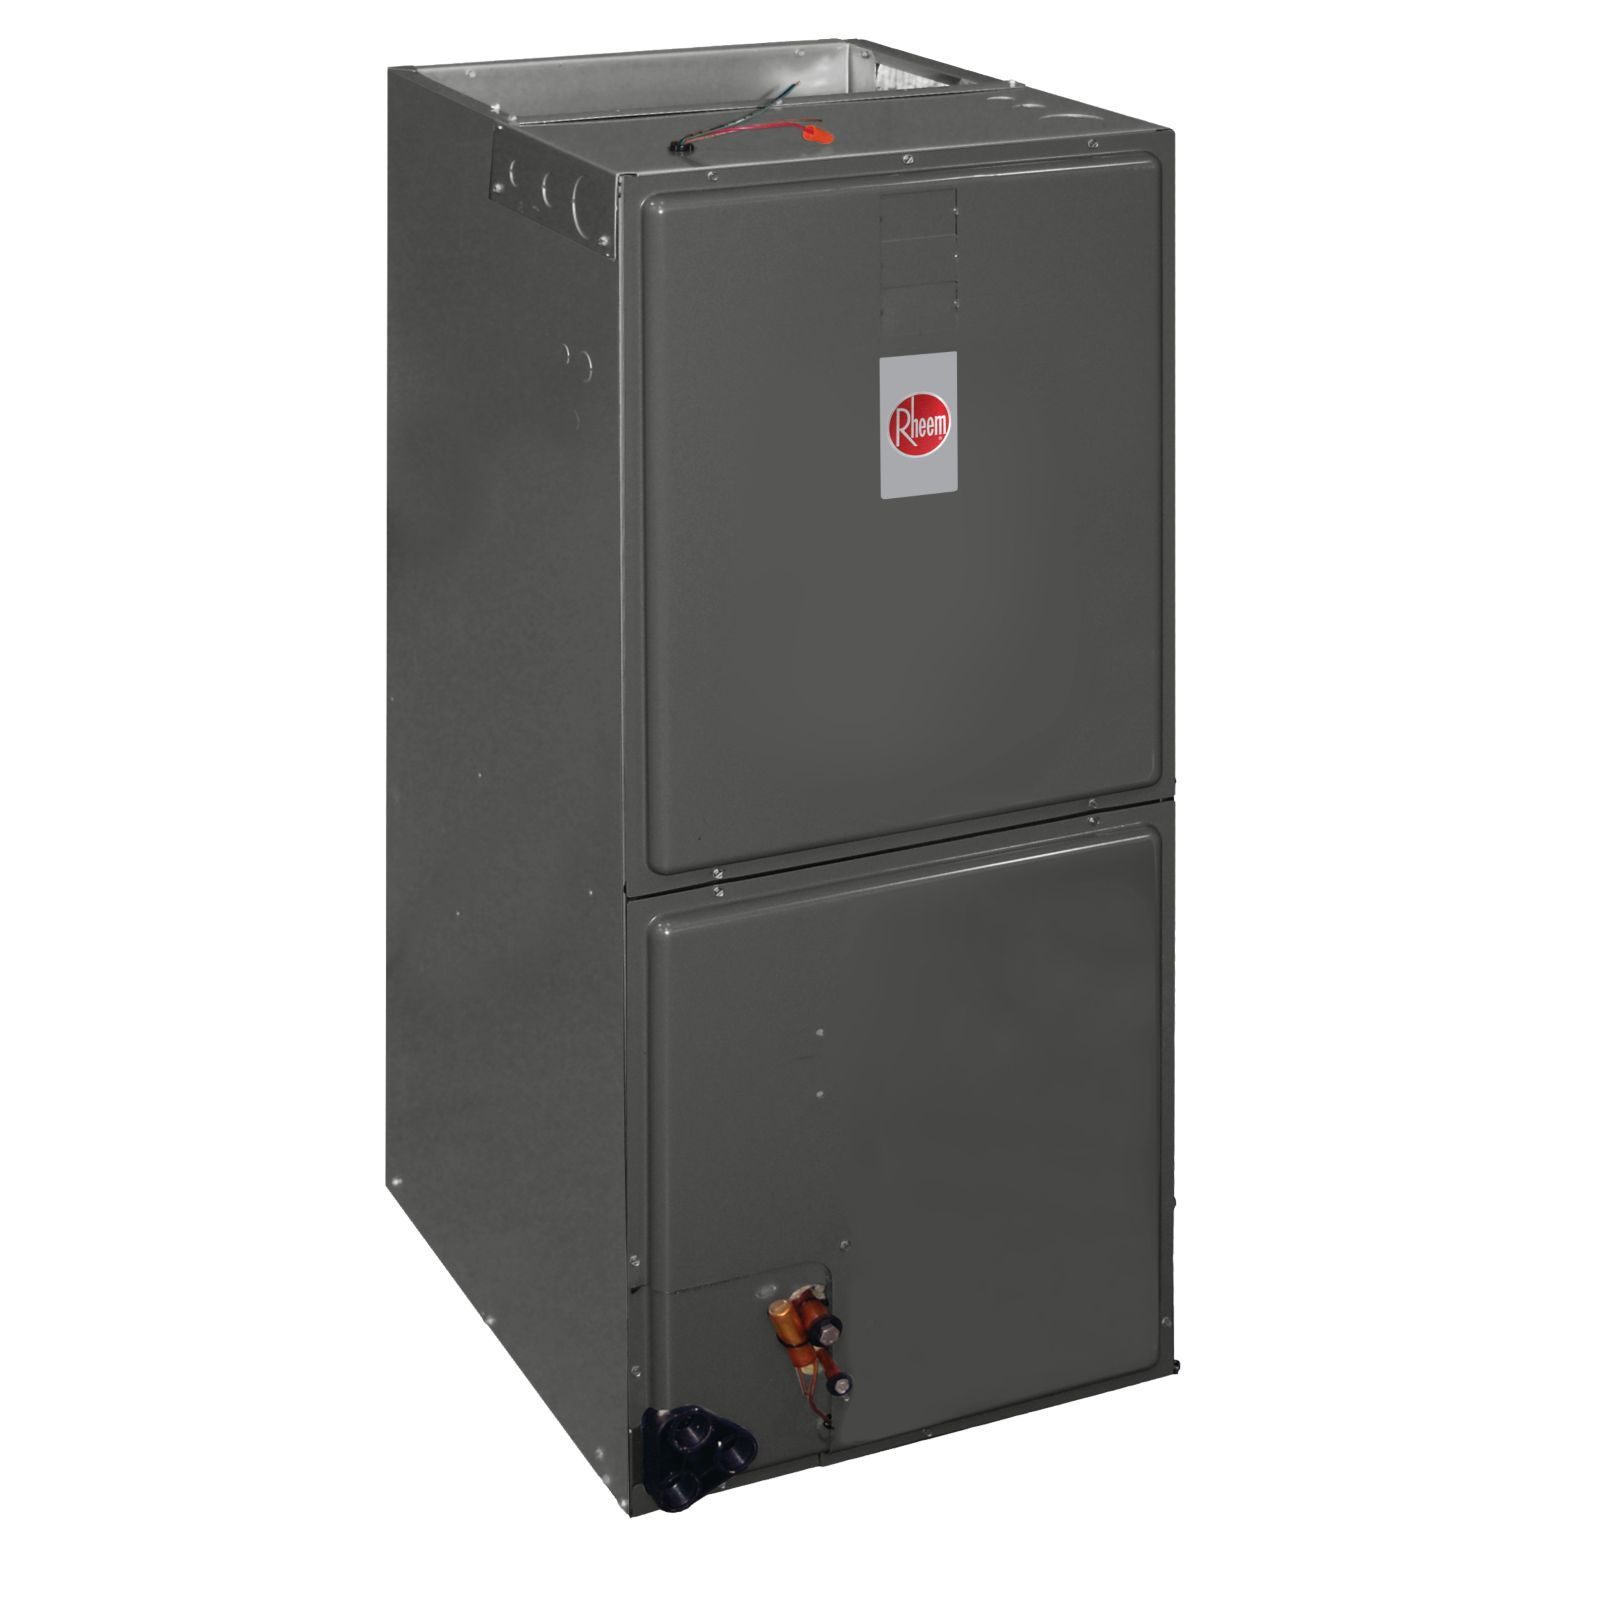 Rheem RHPN-HM3624JC - Premium 3 Ton Multiposition High Efficiency Air Handler with Comfort Control - Up to 18 SEER - R410A